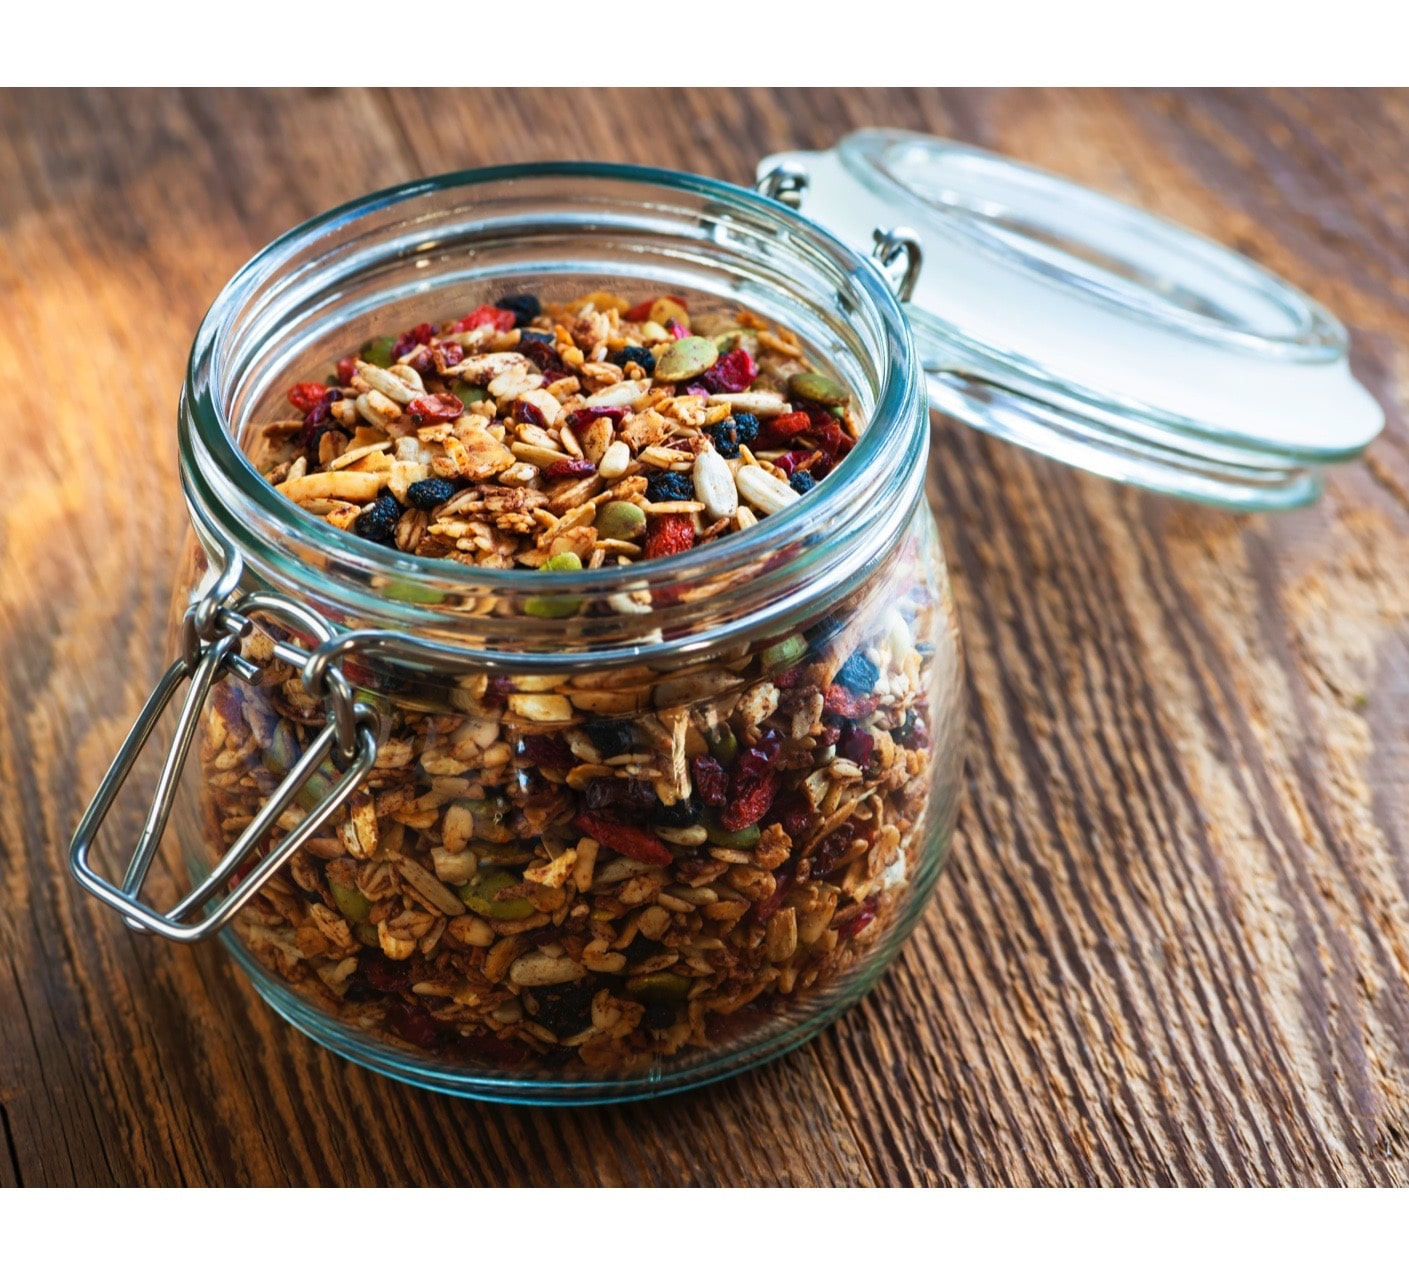 Homemade Coconut Nutty Granola Recipe in 5 Easy Steps